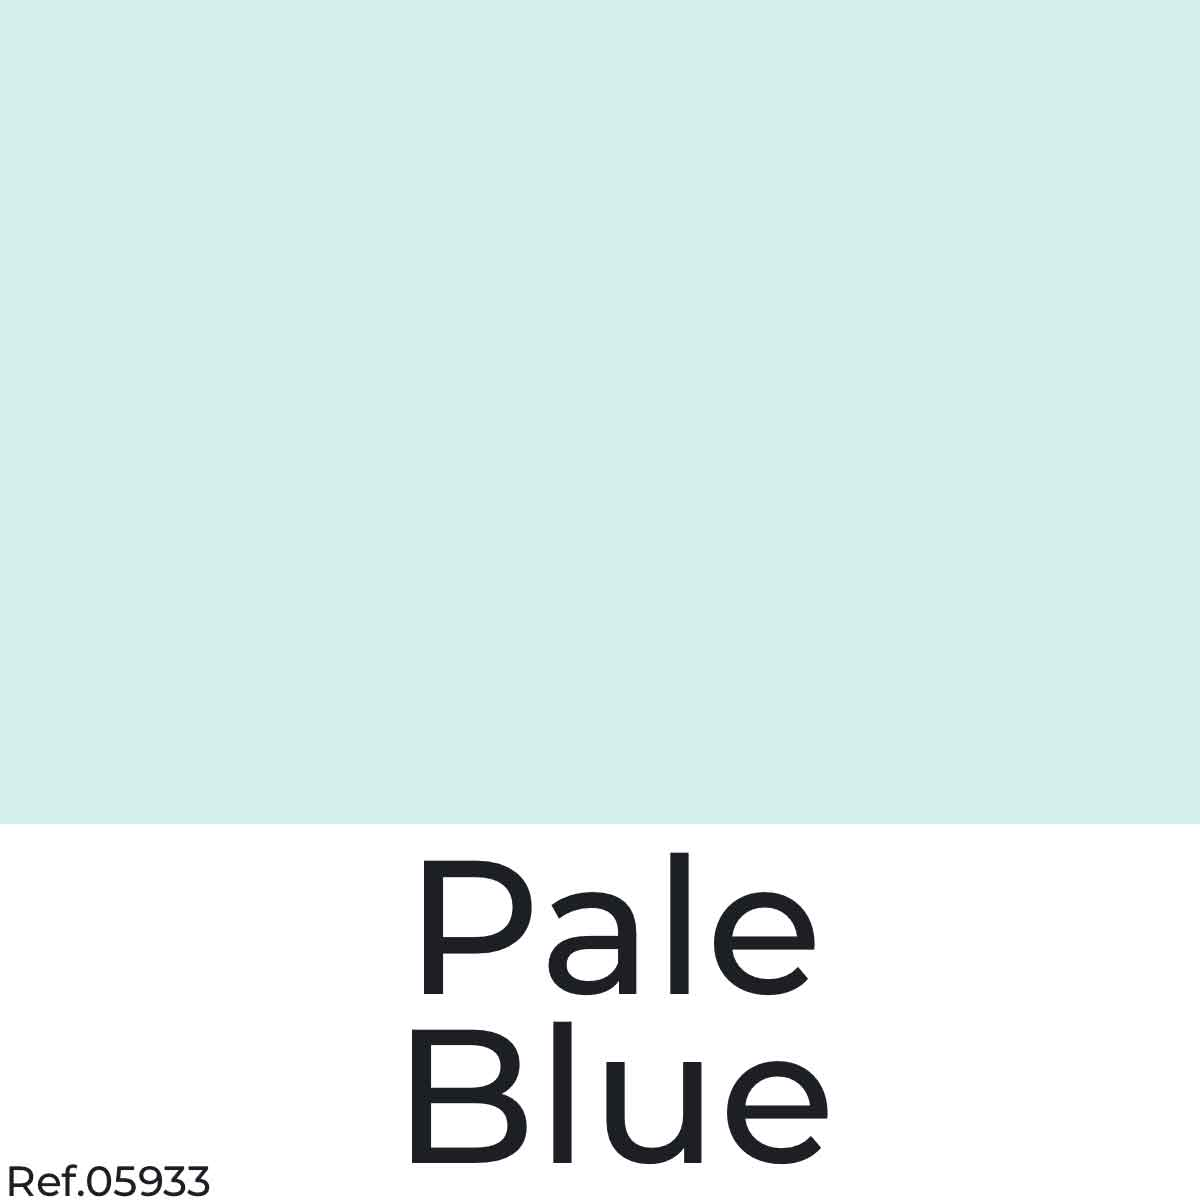 Pale Blue Color Poster Paper from najamonline.com Abu Dhabi - UAE